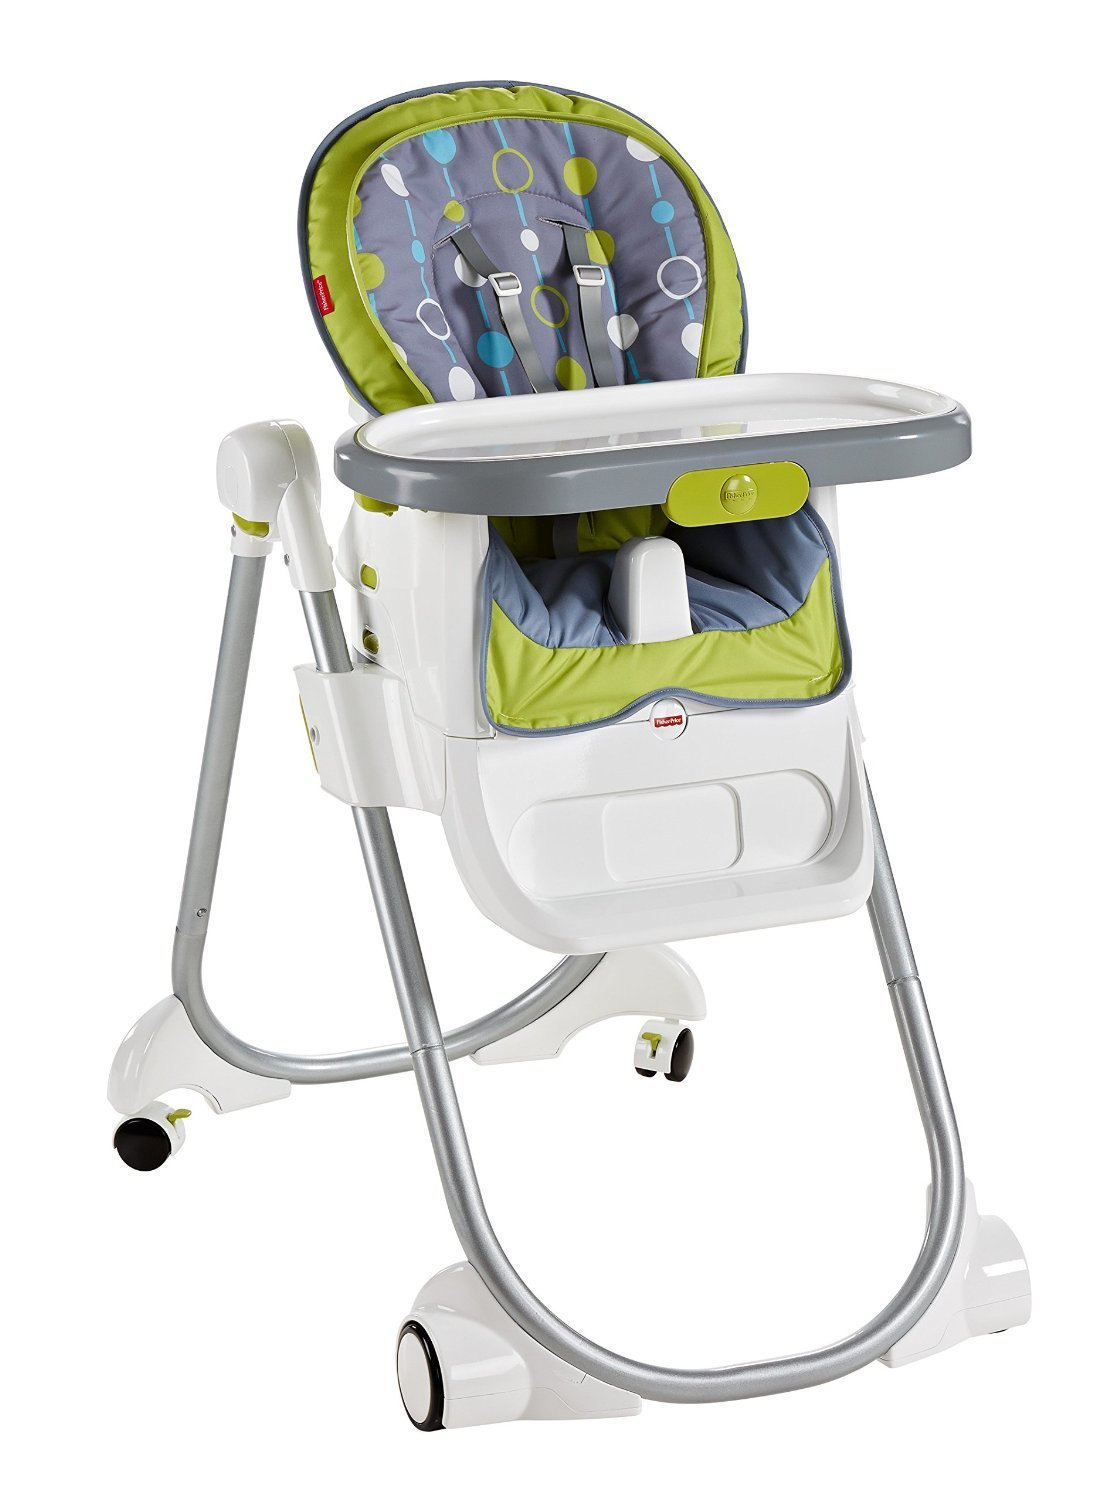 amazoncom  fisherprice in total clean high chair green  - amazoncom  fisherprice in total clean high chair greengray  baby